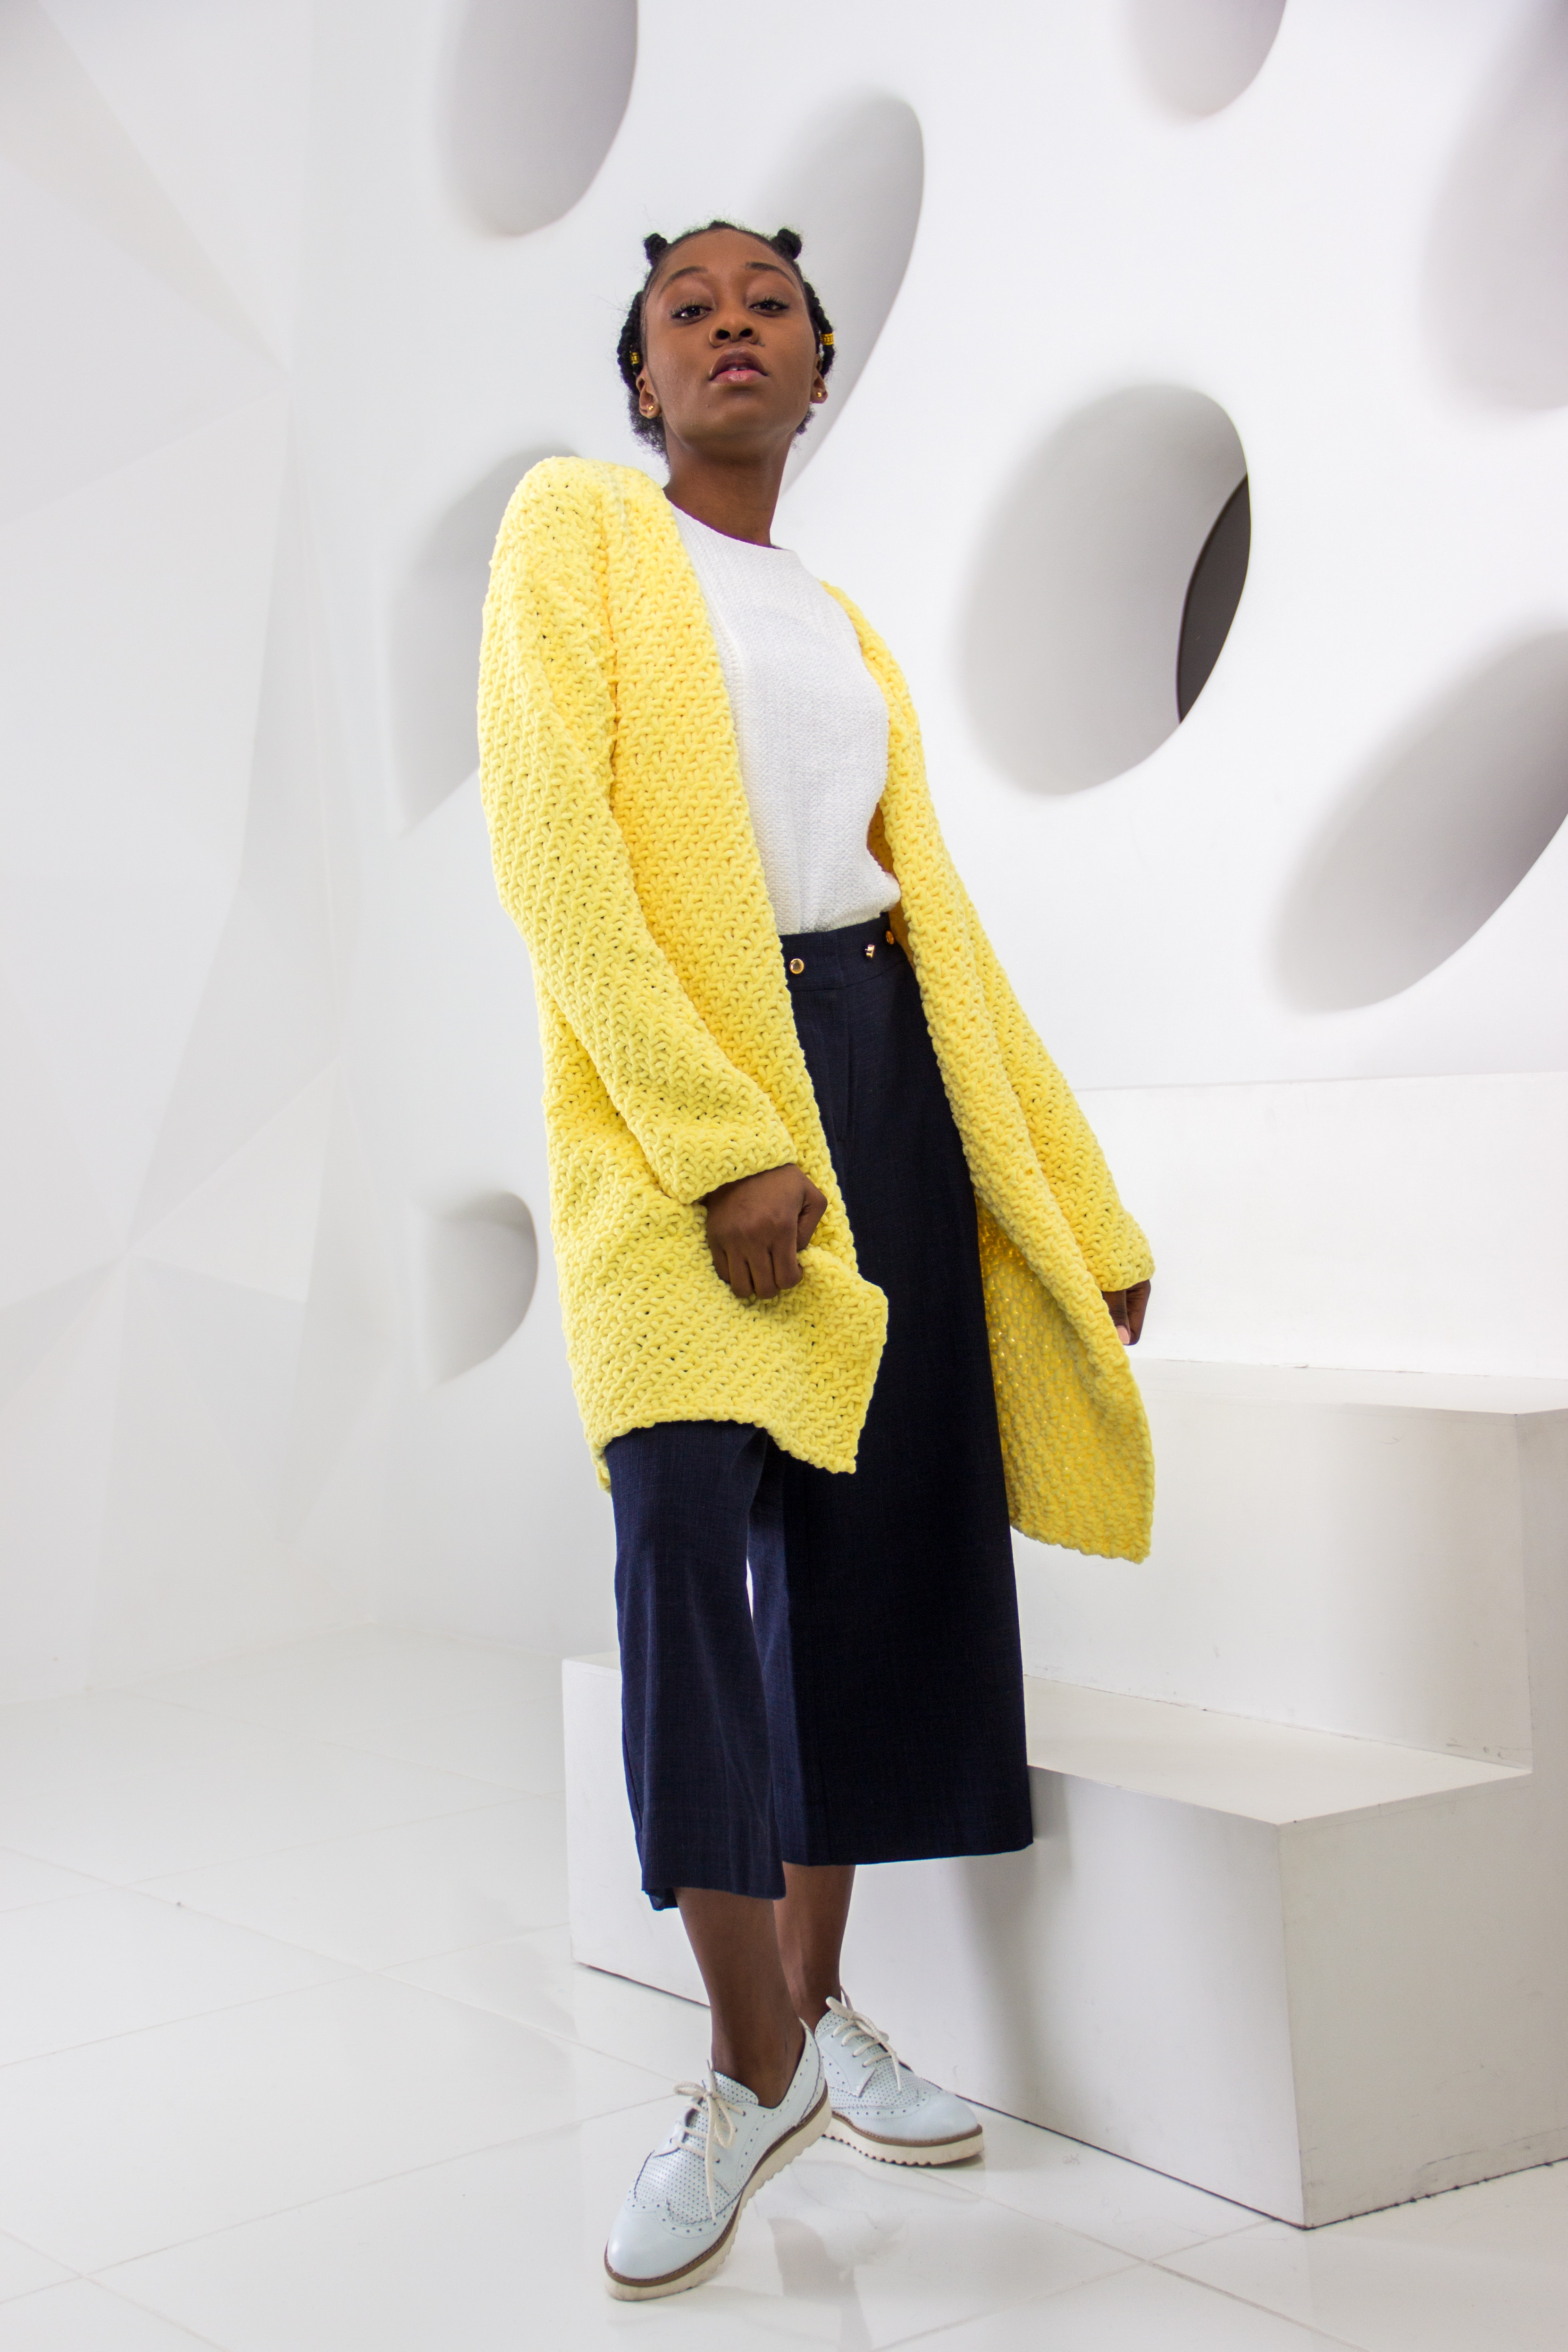 Woman Wearing Yellow Knit Cardigan Standing, Room, Pose, Photography, Shoes, HQ Photo